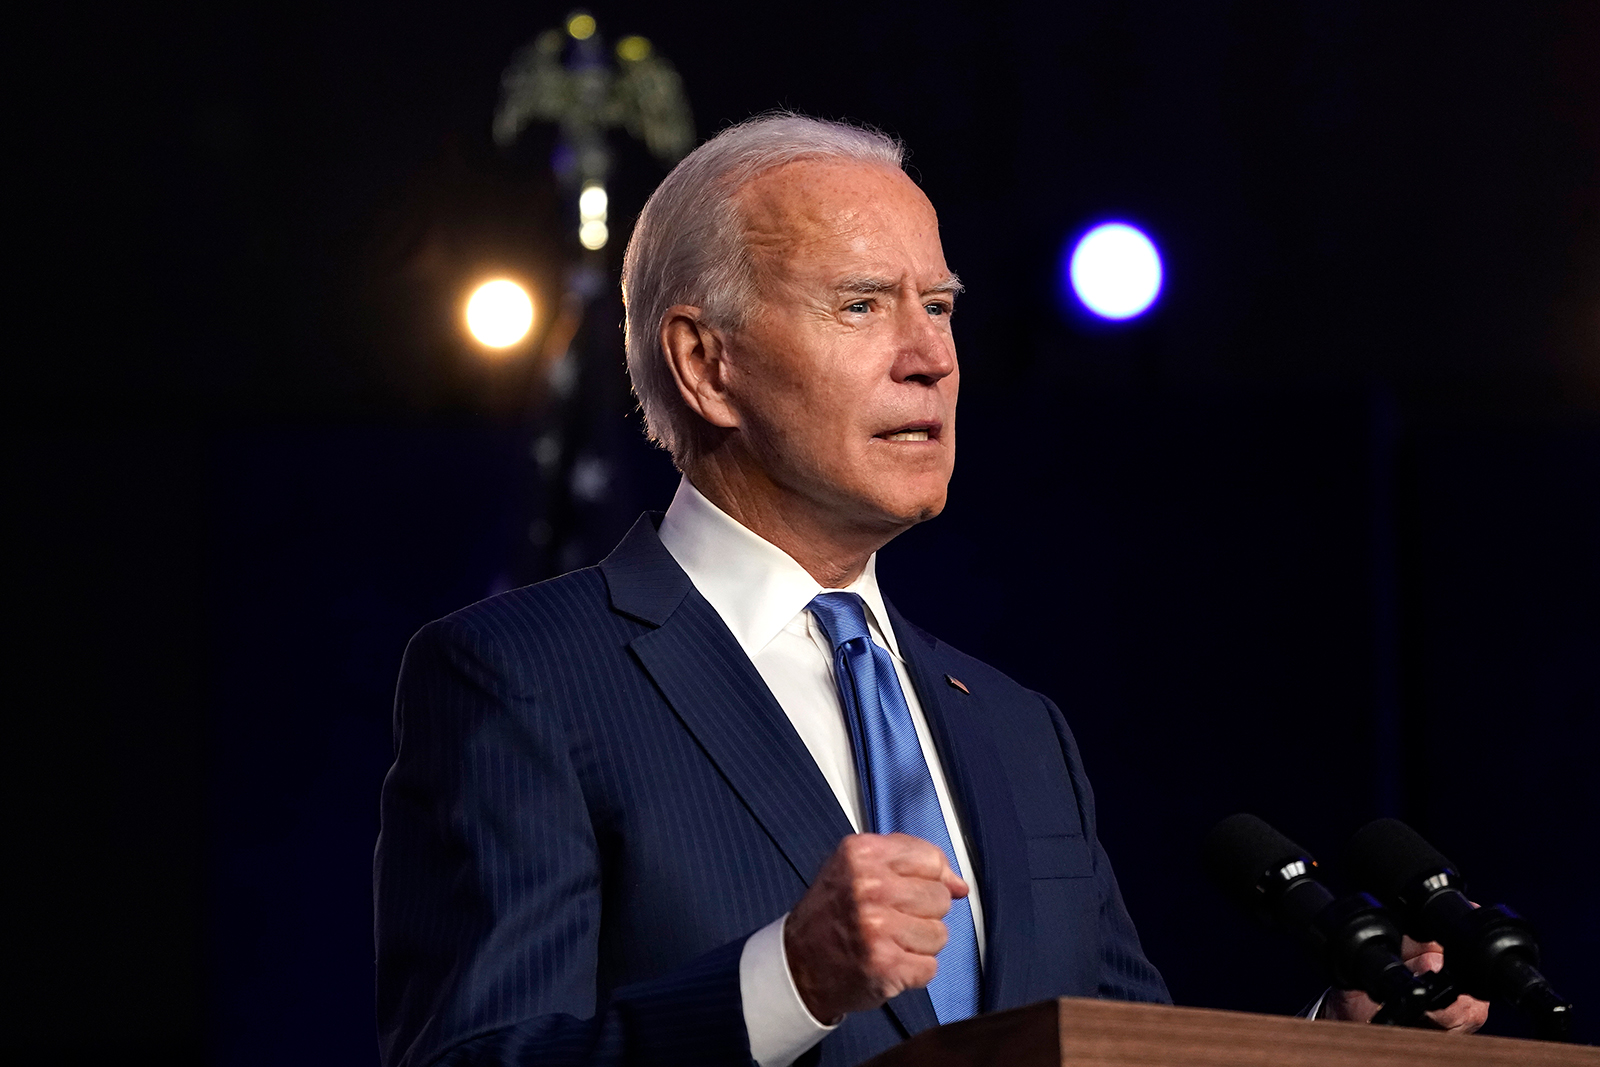 Democratic presidential nominee Joe Biden addresses the nation at the Chase Center November 6, in Wilmington, Delaware.